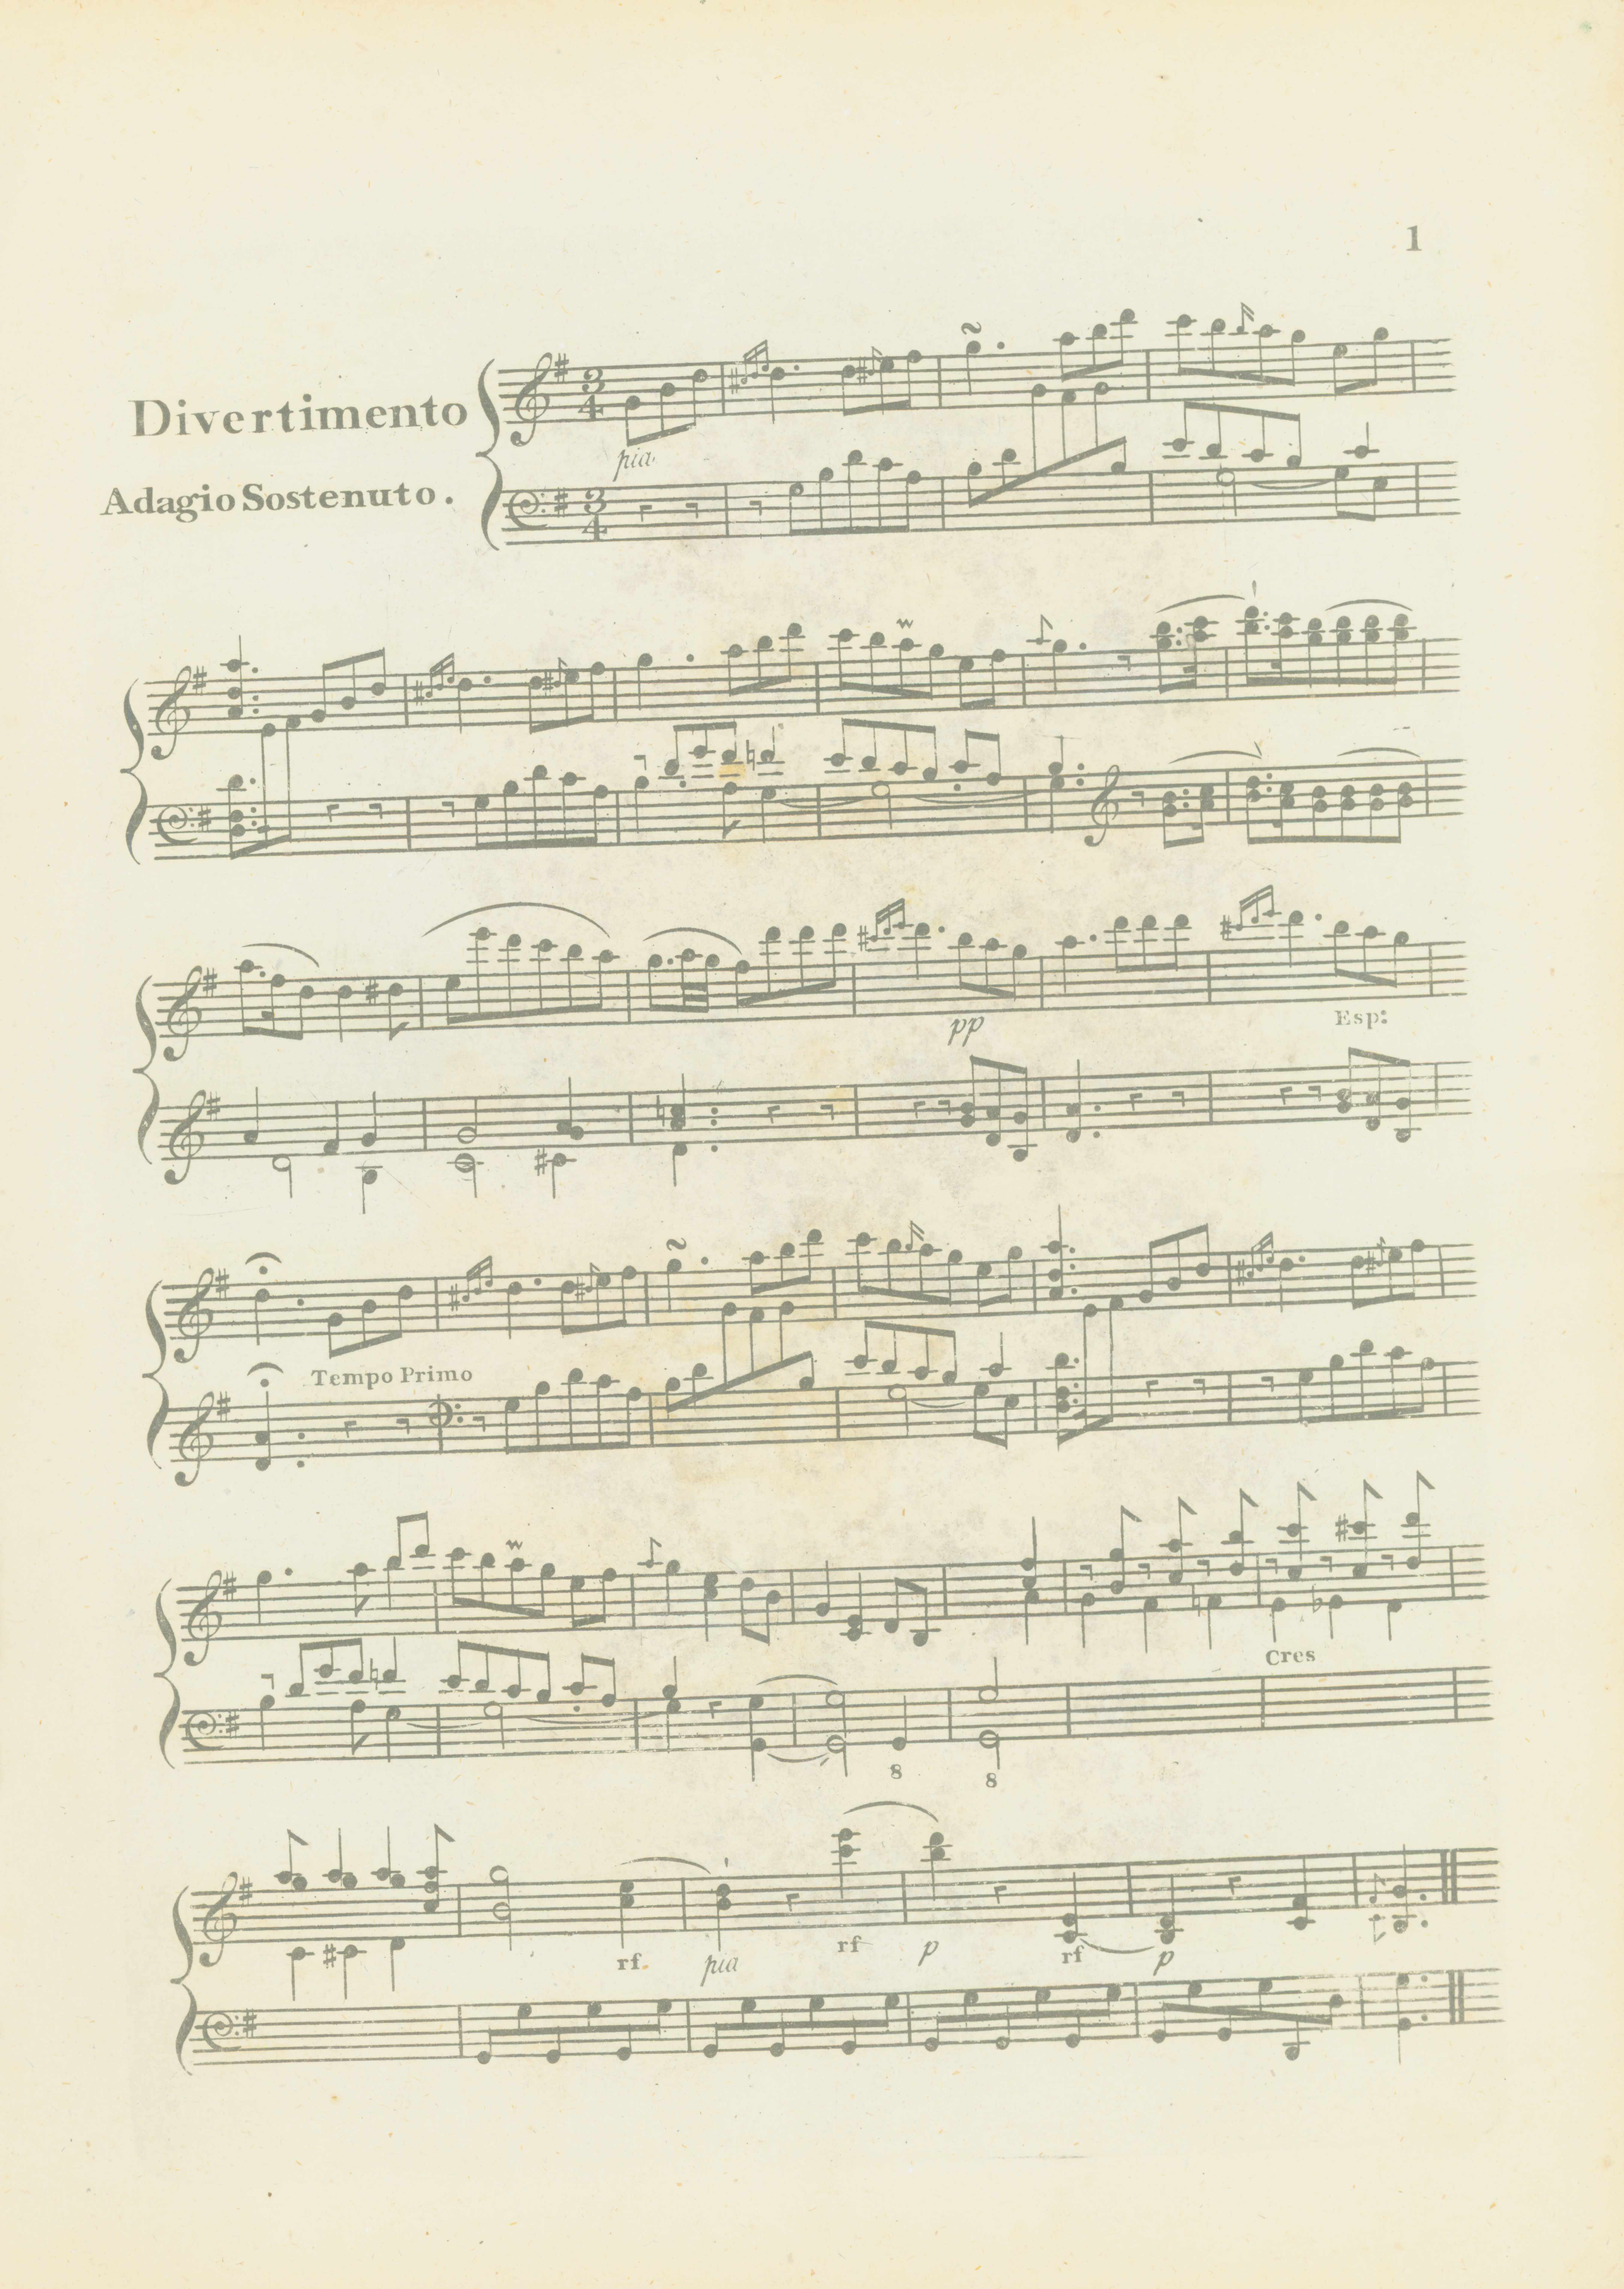 Southwell, F.W. - A Scotch, Divertimento For The Pianoforte, With Addl. Keys. - (7139)